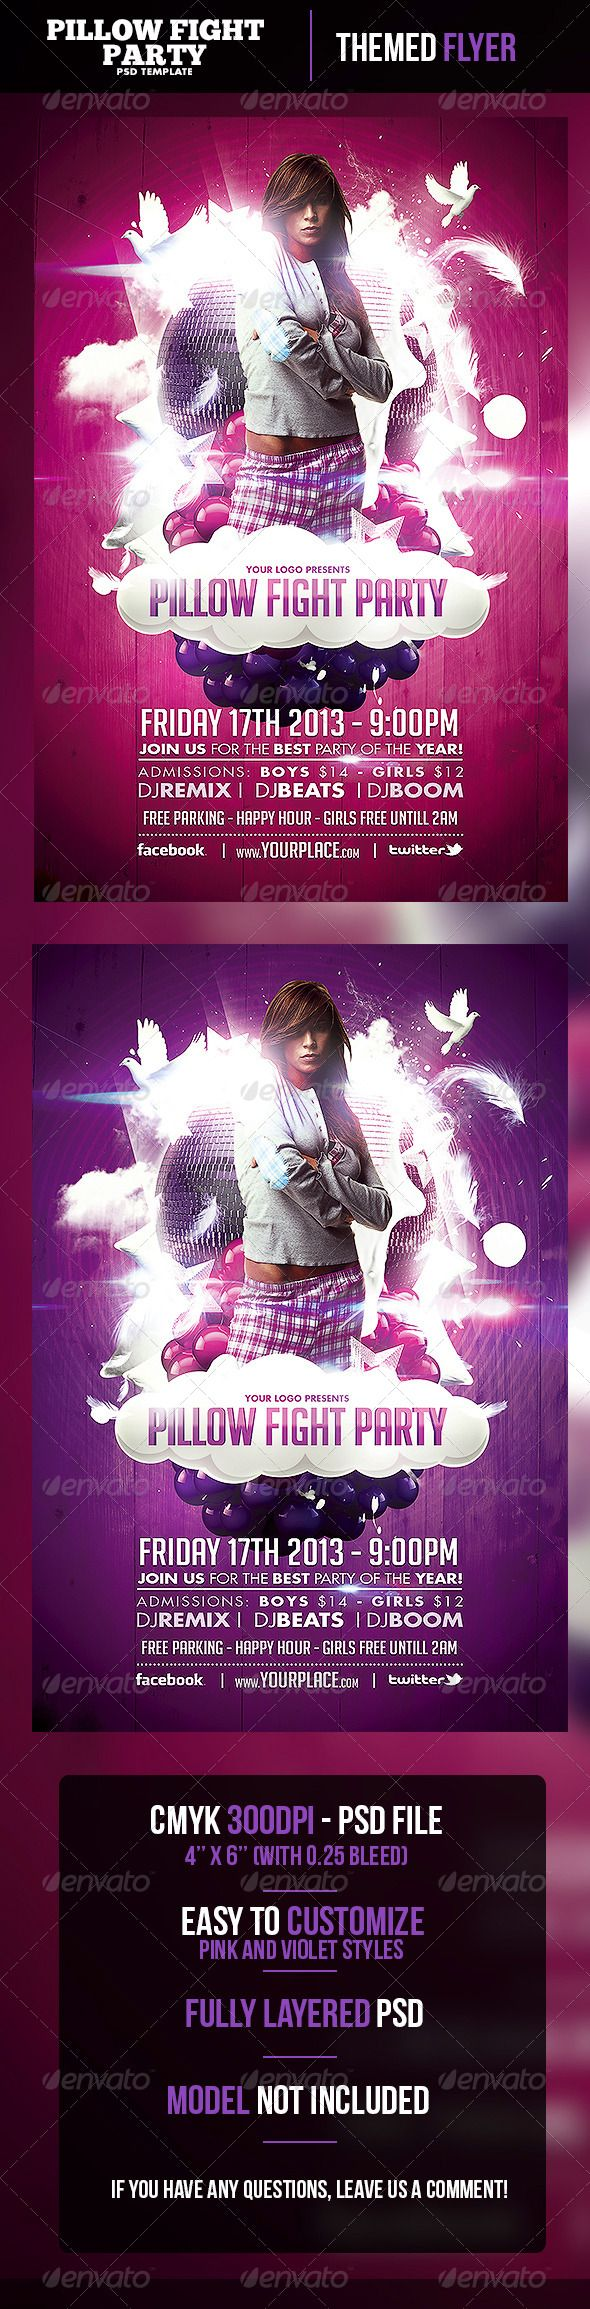 pillow fight party flyer template graphicriver pillow fight party